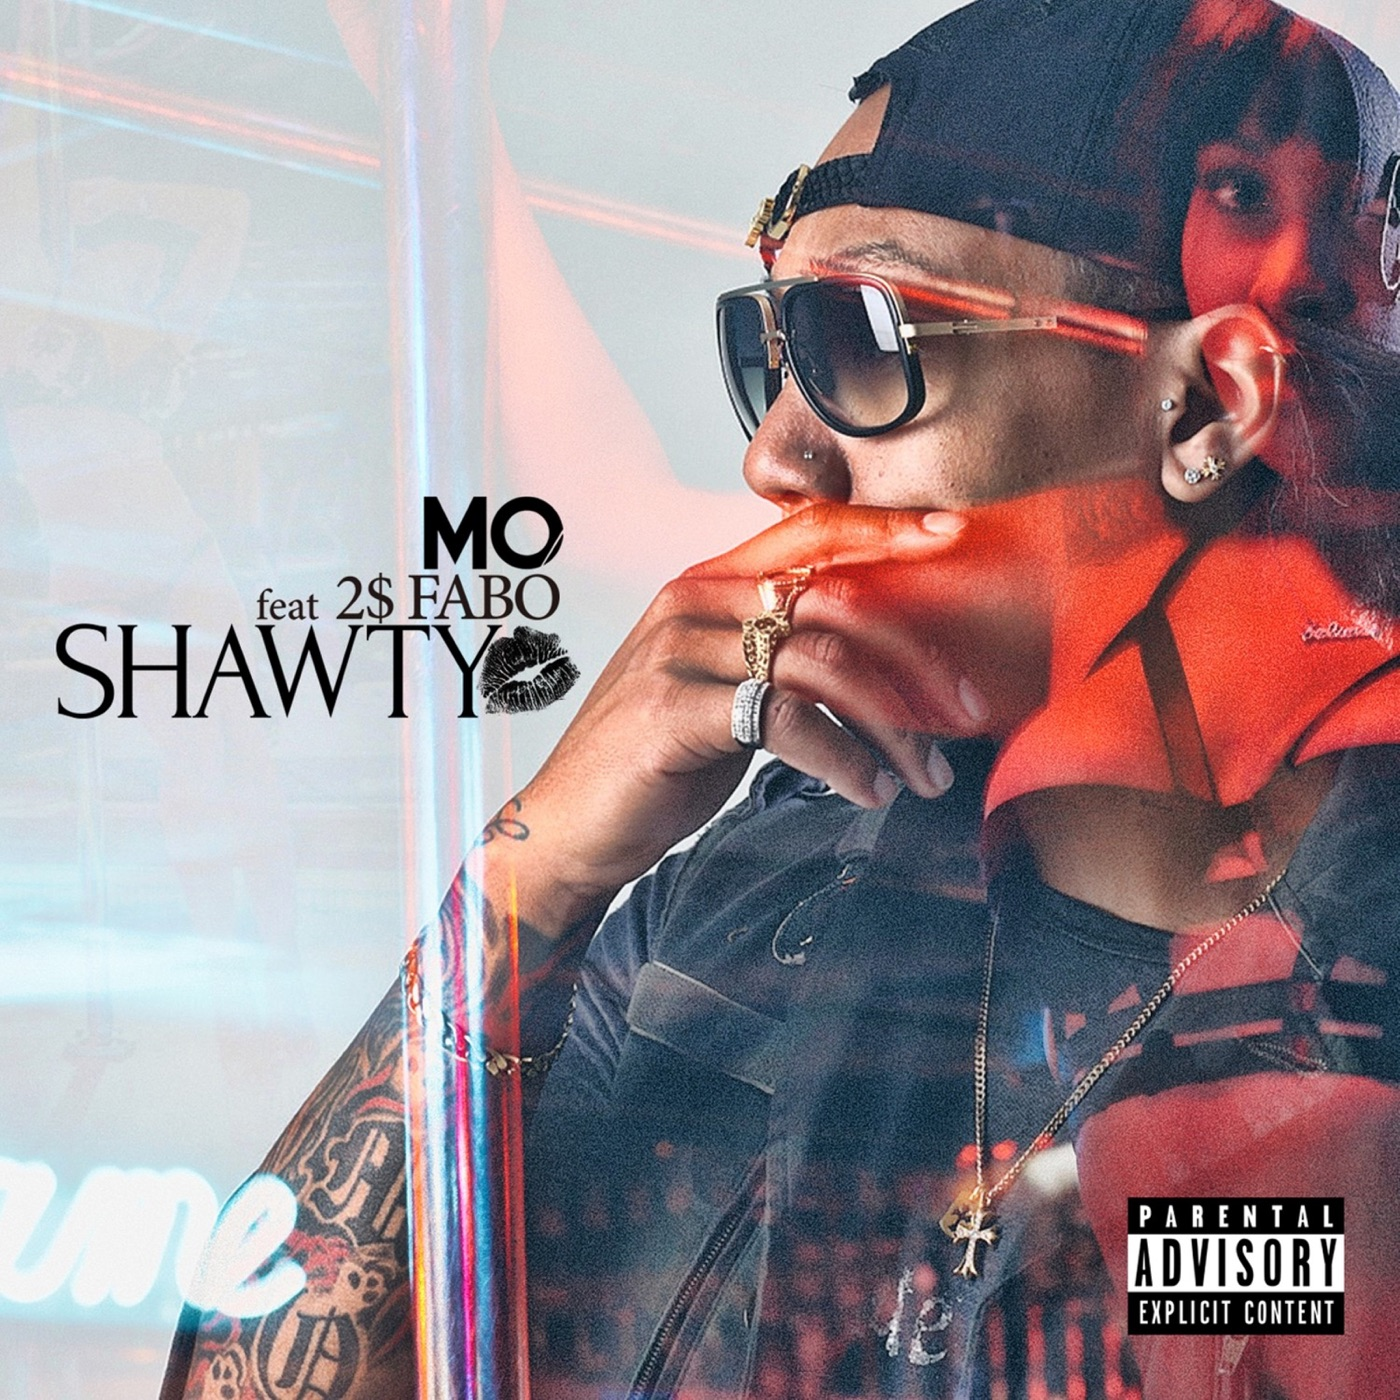 Mo - SHAWTY (feat. 2$FABO) - Single